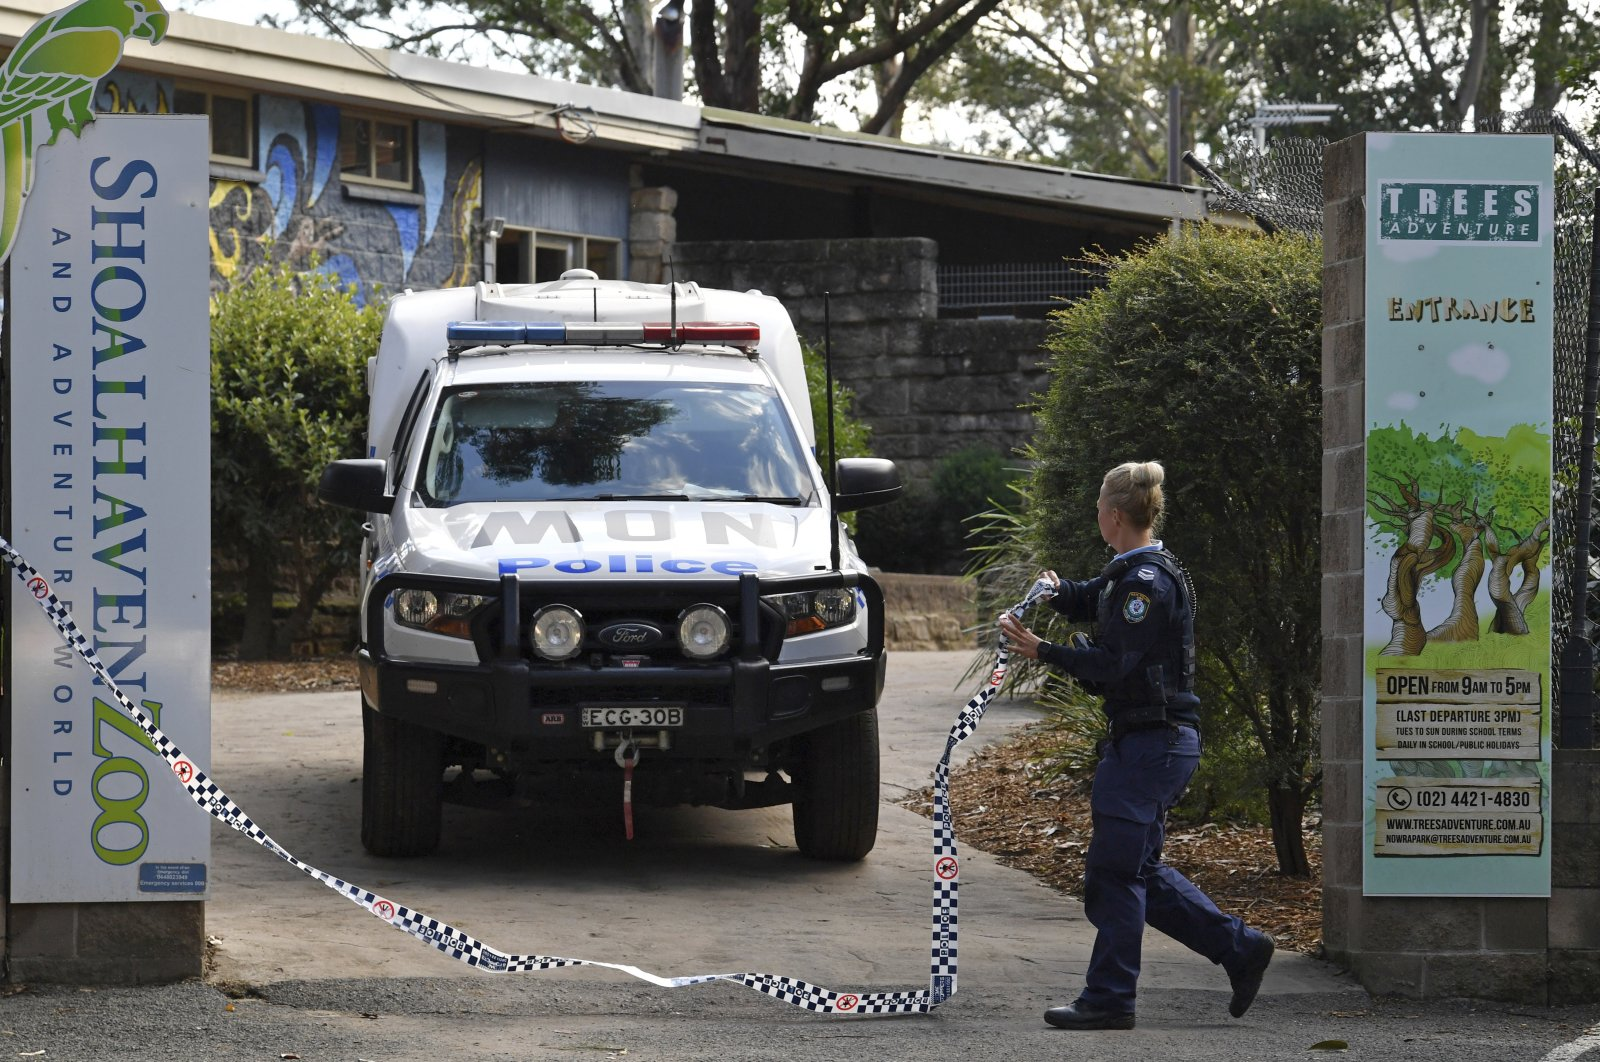 Police work at Shoalhaven Zoo in Nowra, Australia on May, 29, 2020, where an animal keeper was critically injured after being mauled by two lions. (AAP Image via AP)